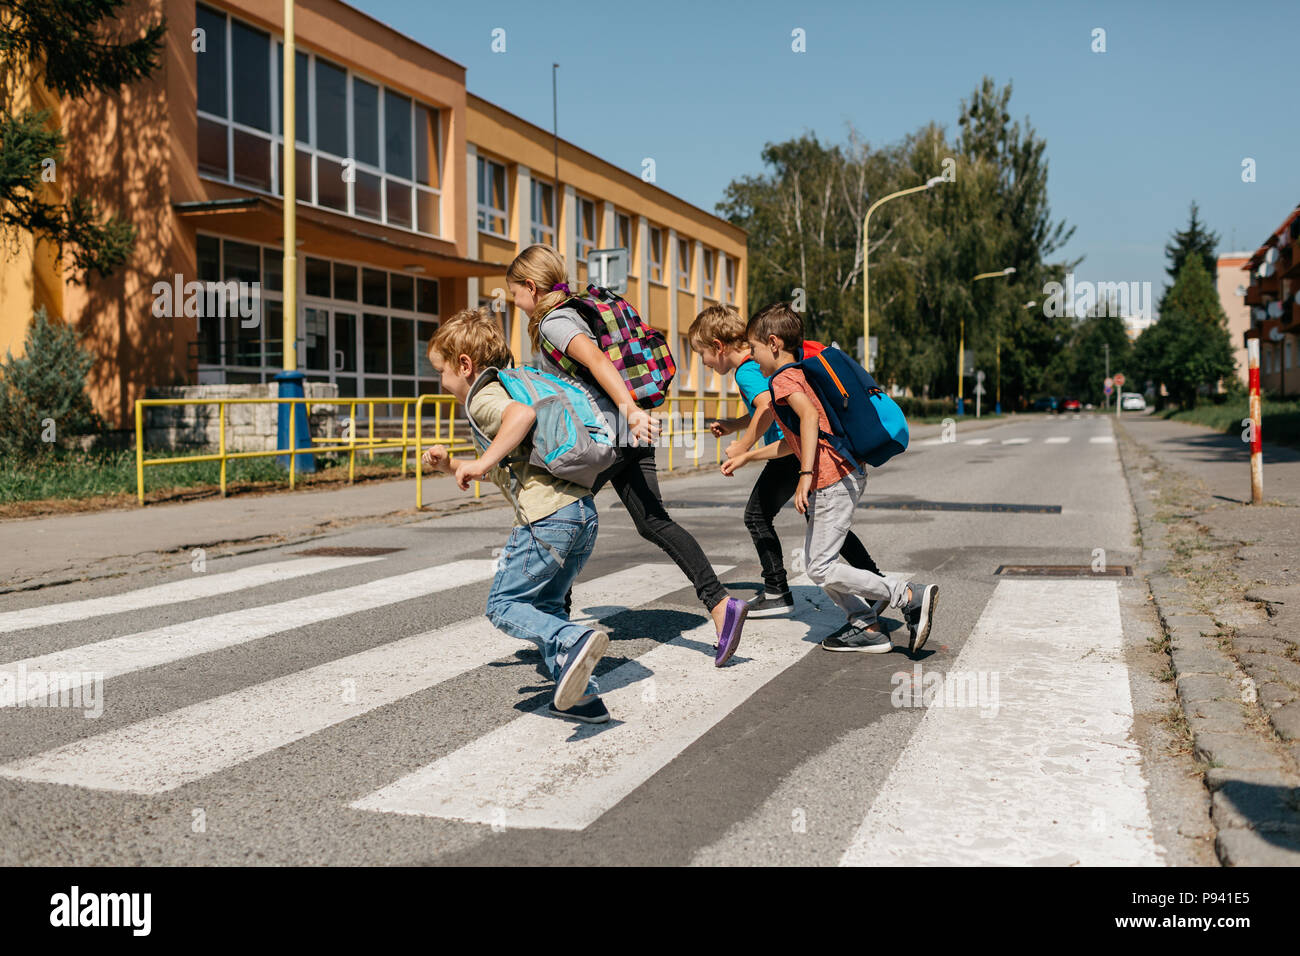 School children running across a street at a crosswalk. Group of primary students rushing to school. - Stock Image